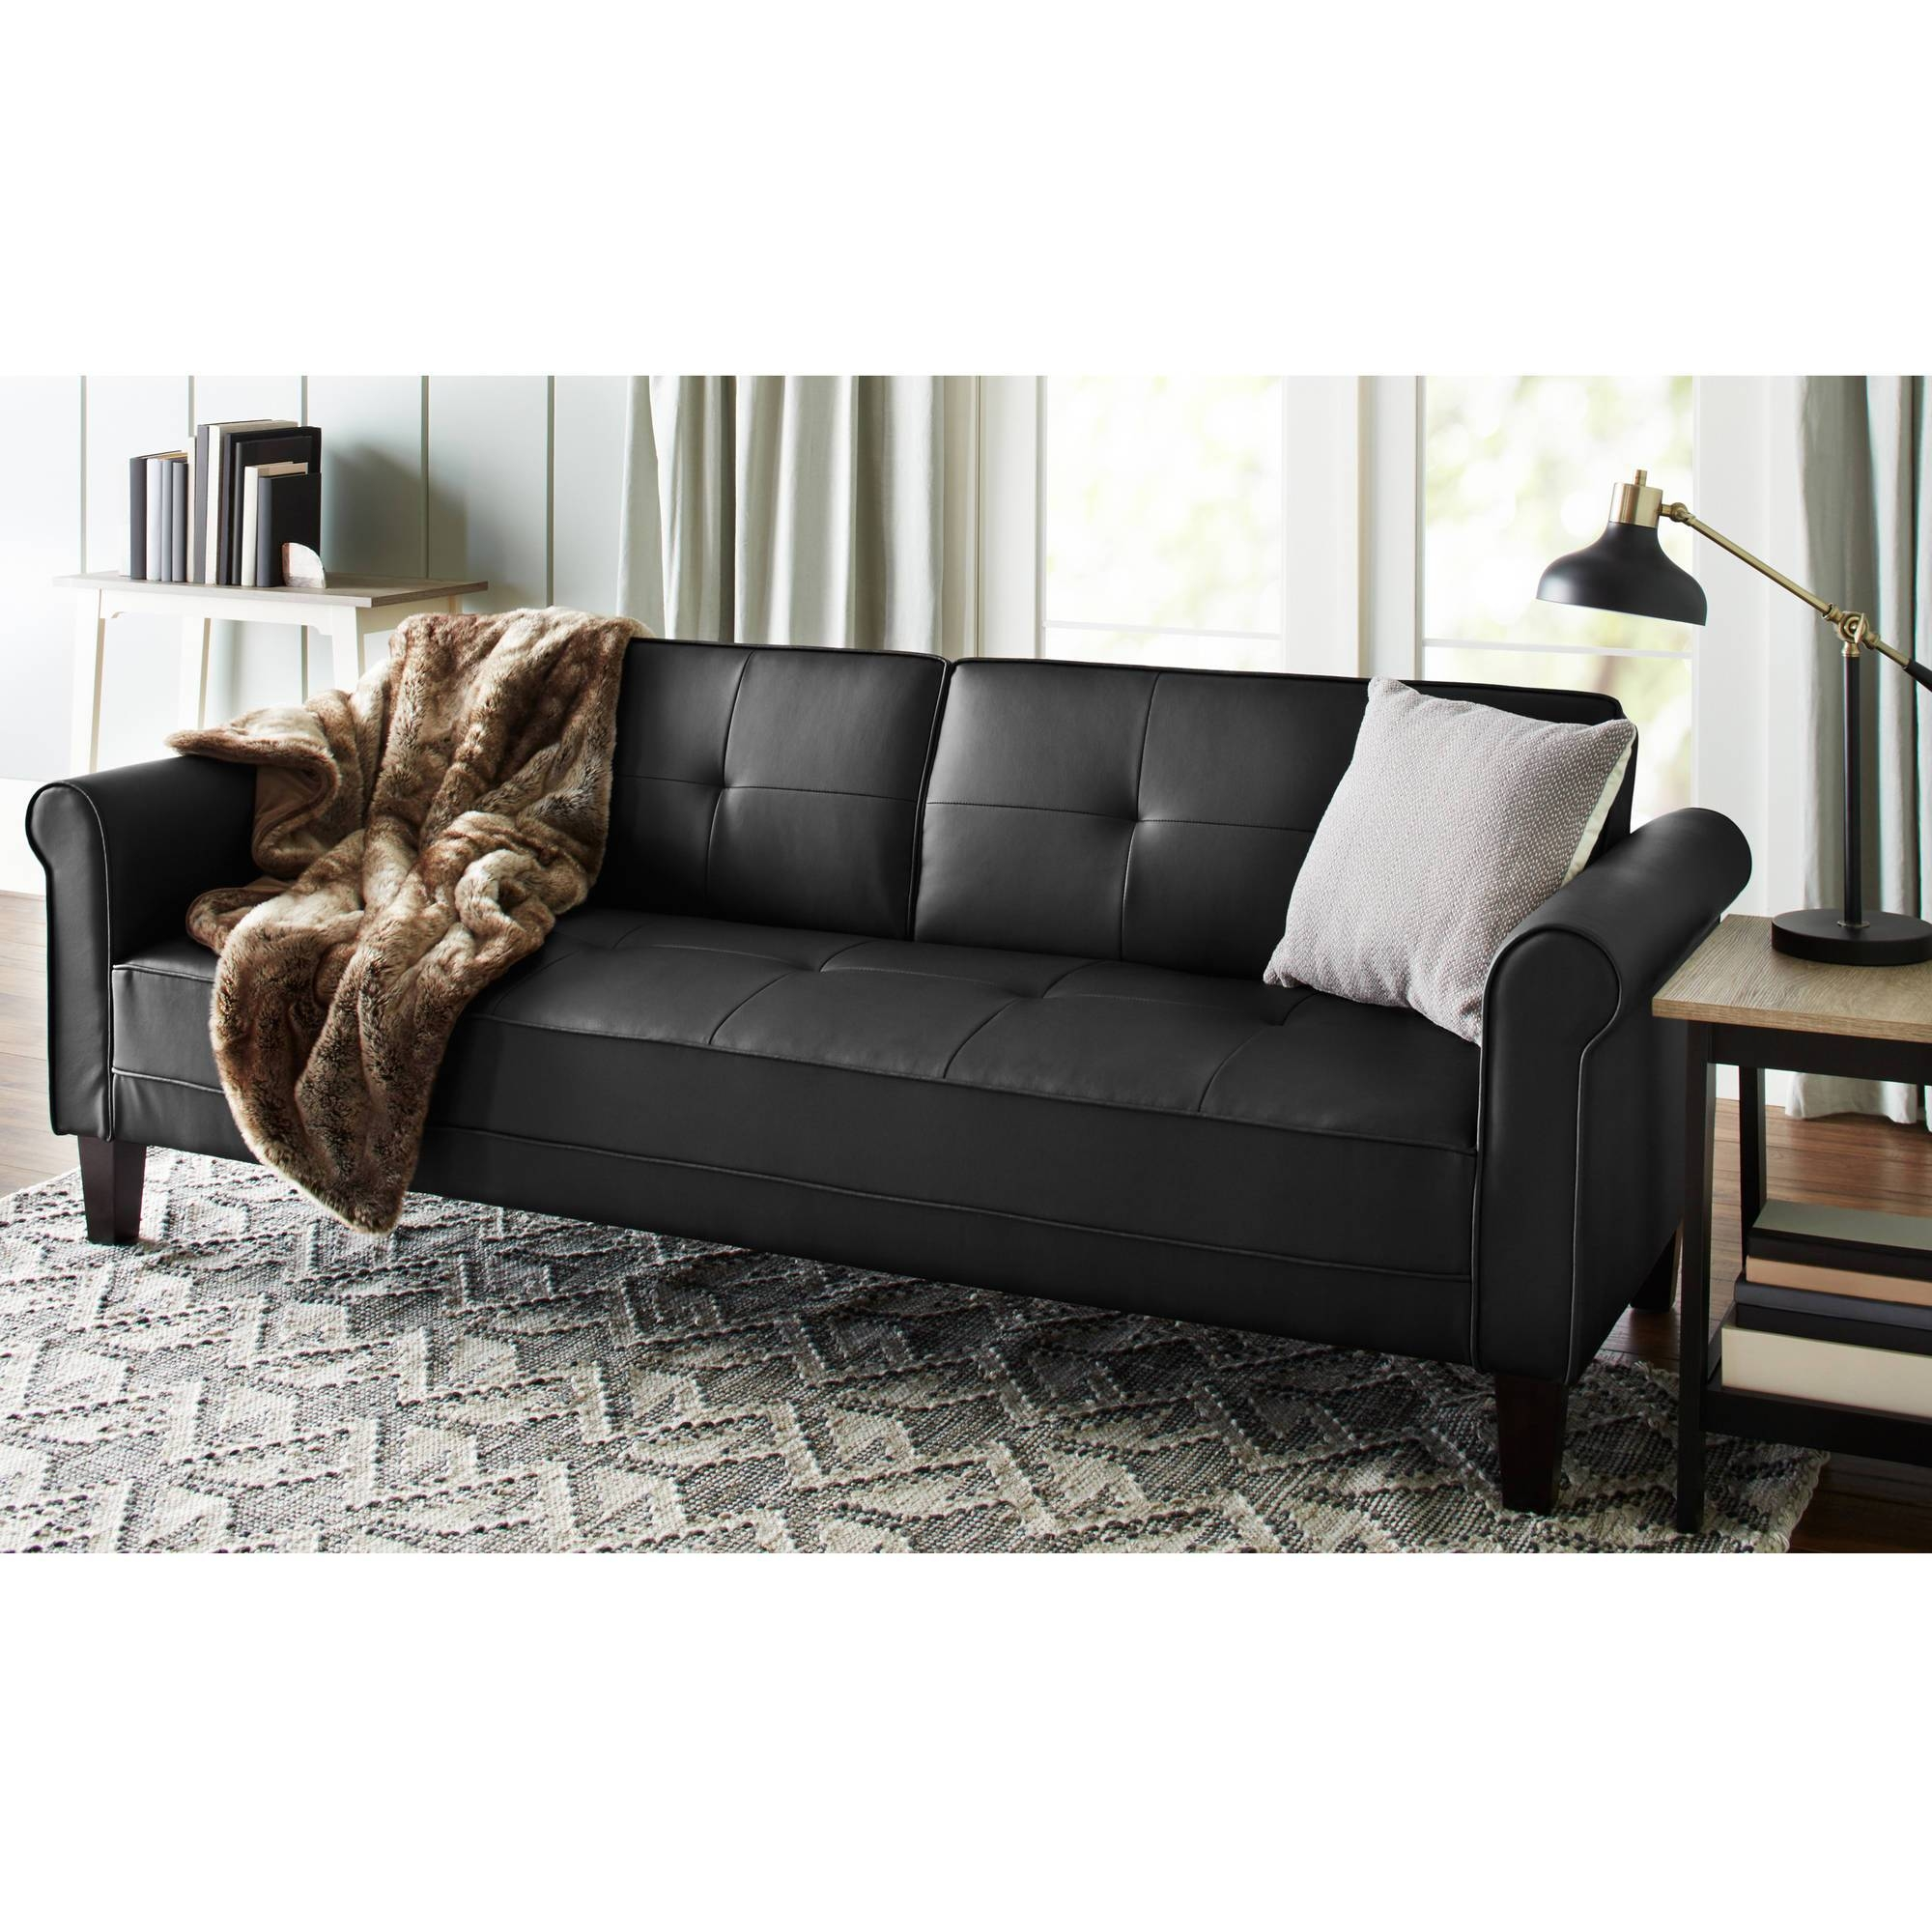 Furniture: Comfort Inflatable Furniture Walmart For Your Relaxing Throughout Sofa Bed Chairs (View 18 of 30)